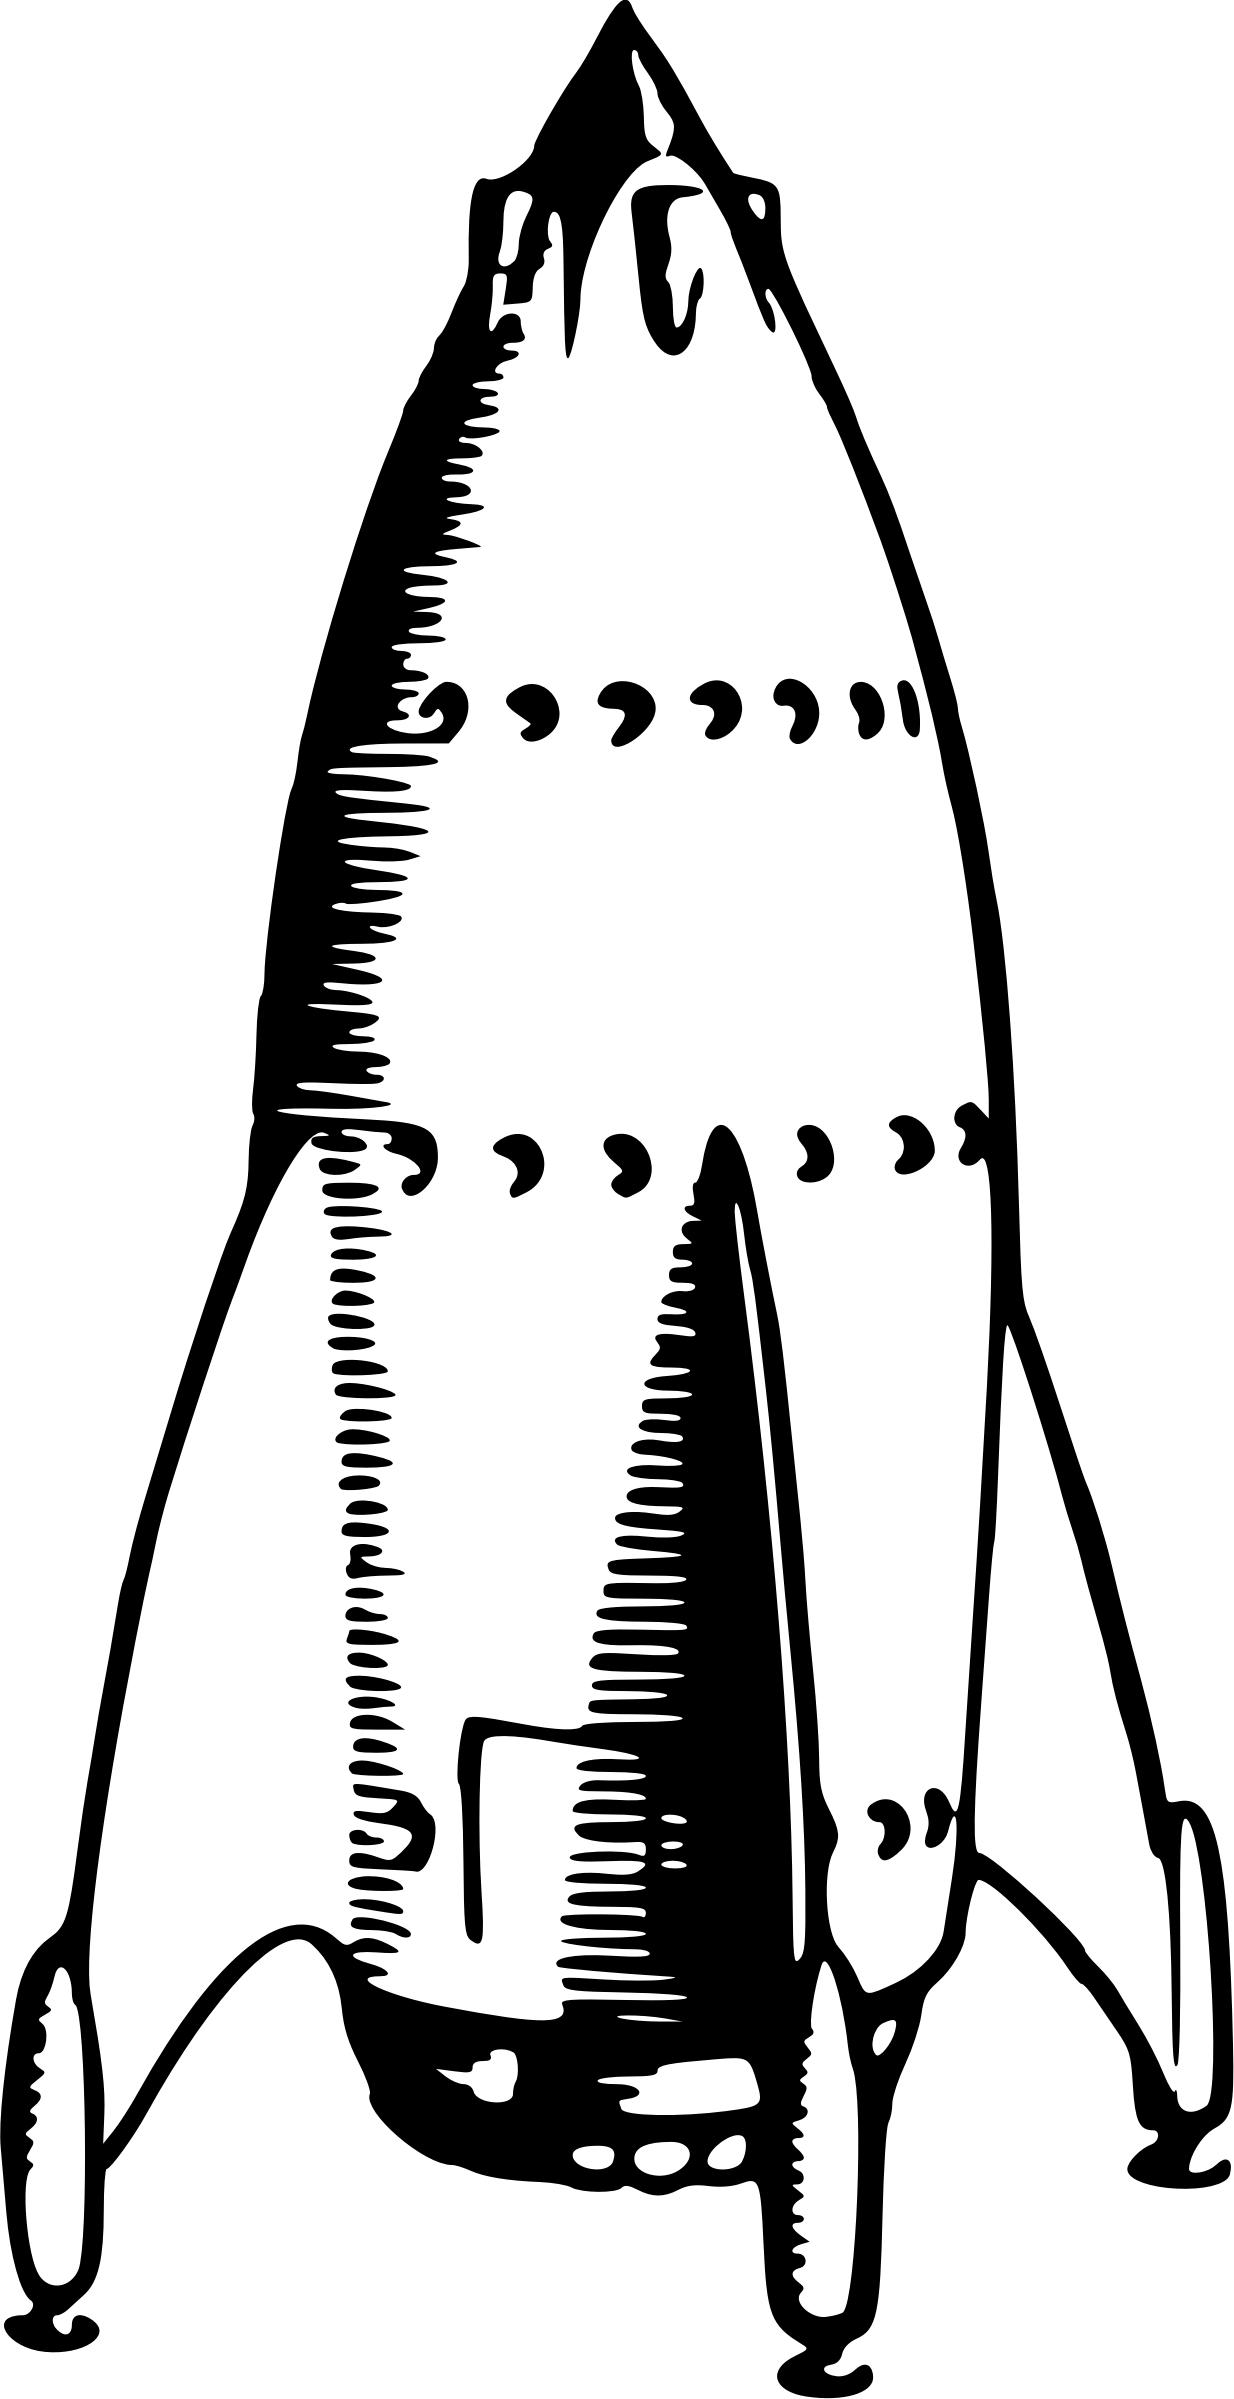 Rocketship clipart rocket booster. Ship icons png free